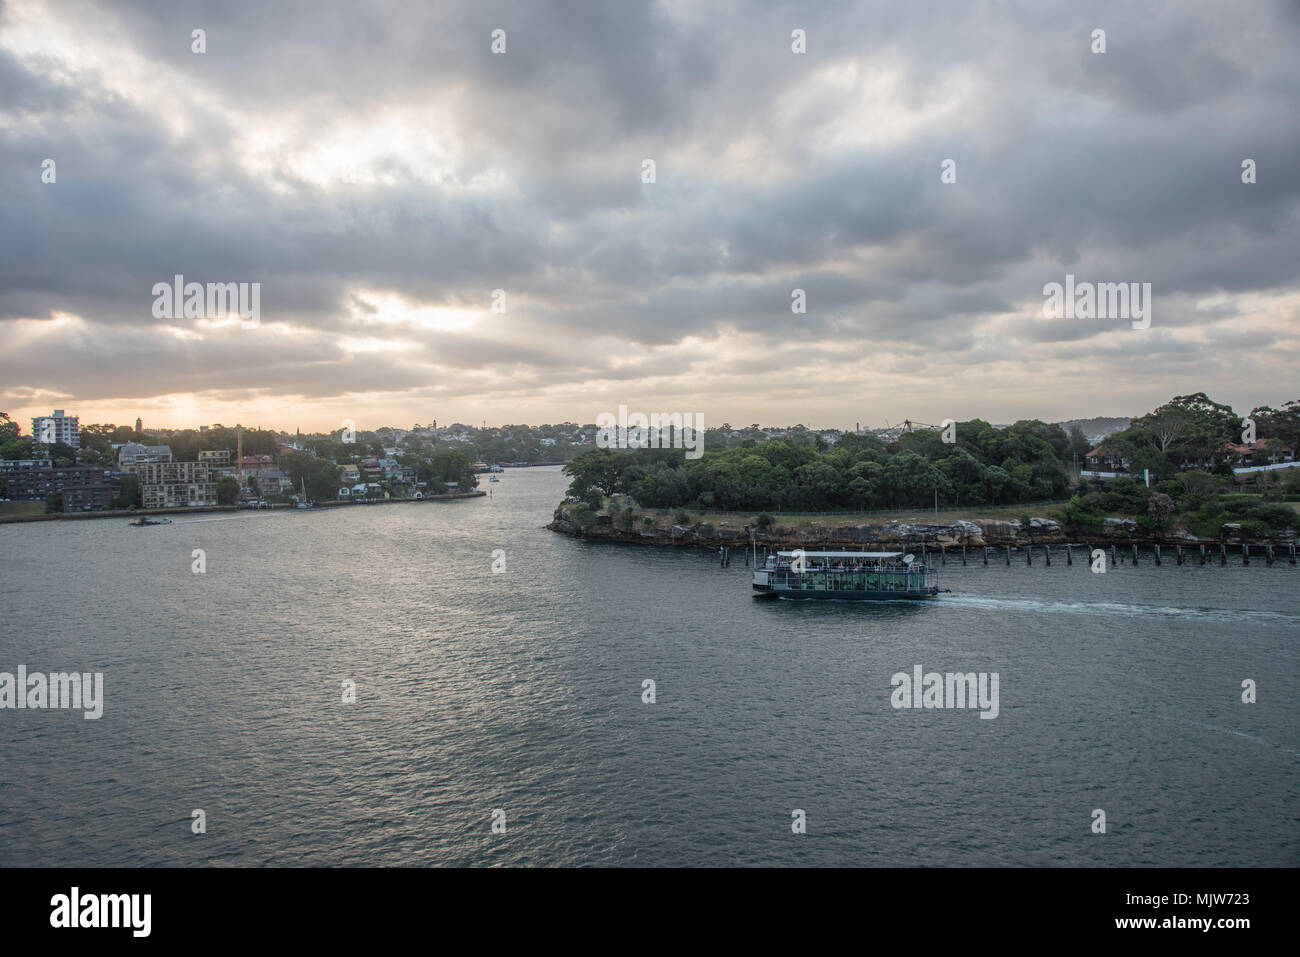 Sydney,NSW,Australia-December 7,2016: Tourists on boat cruising in the harbour at sunset in Sydney, Australia Stock Photo